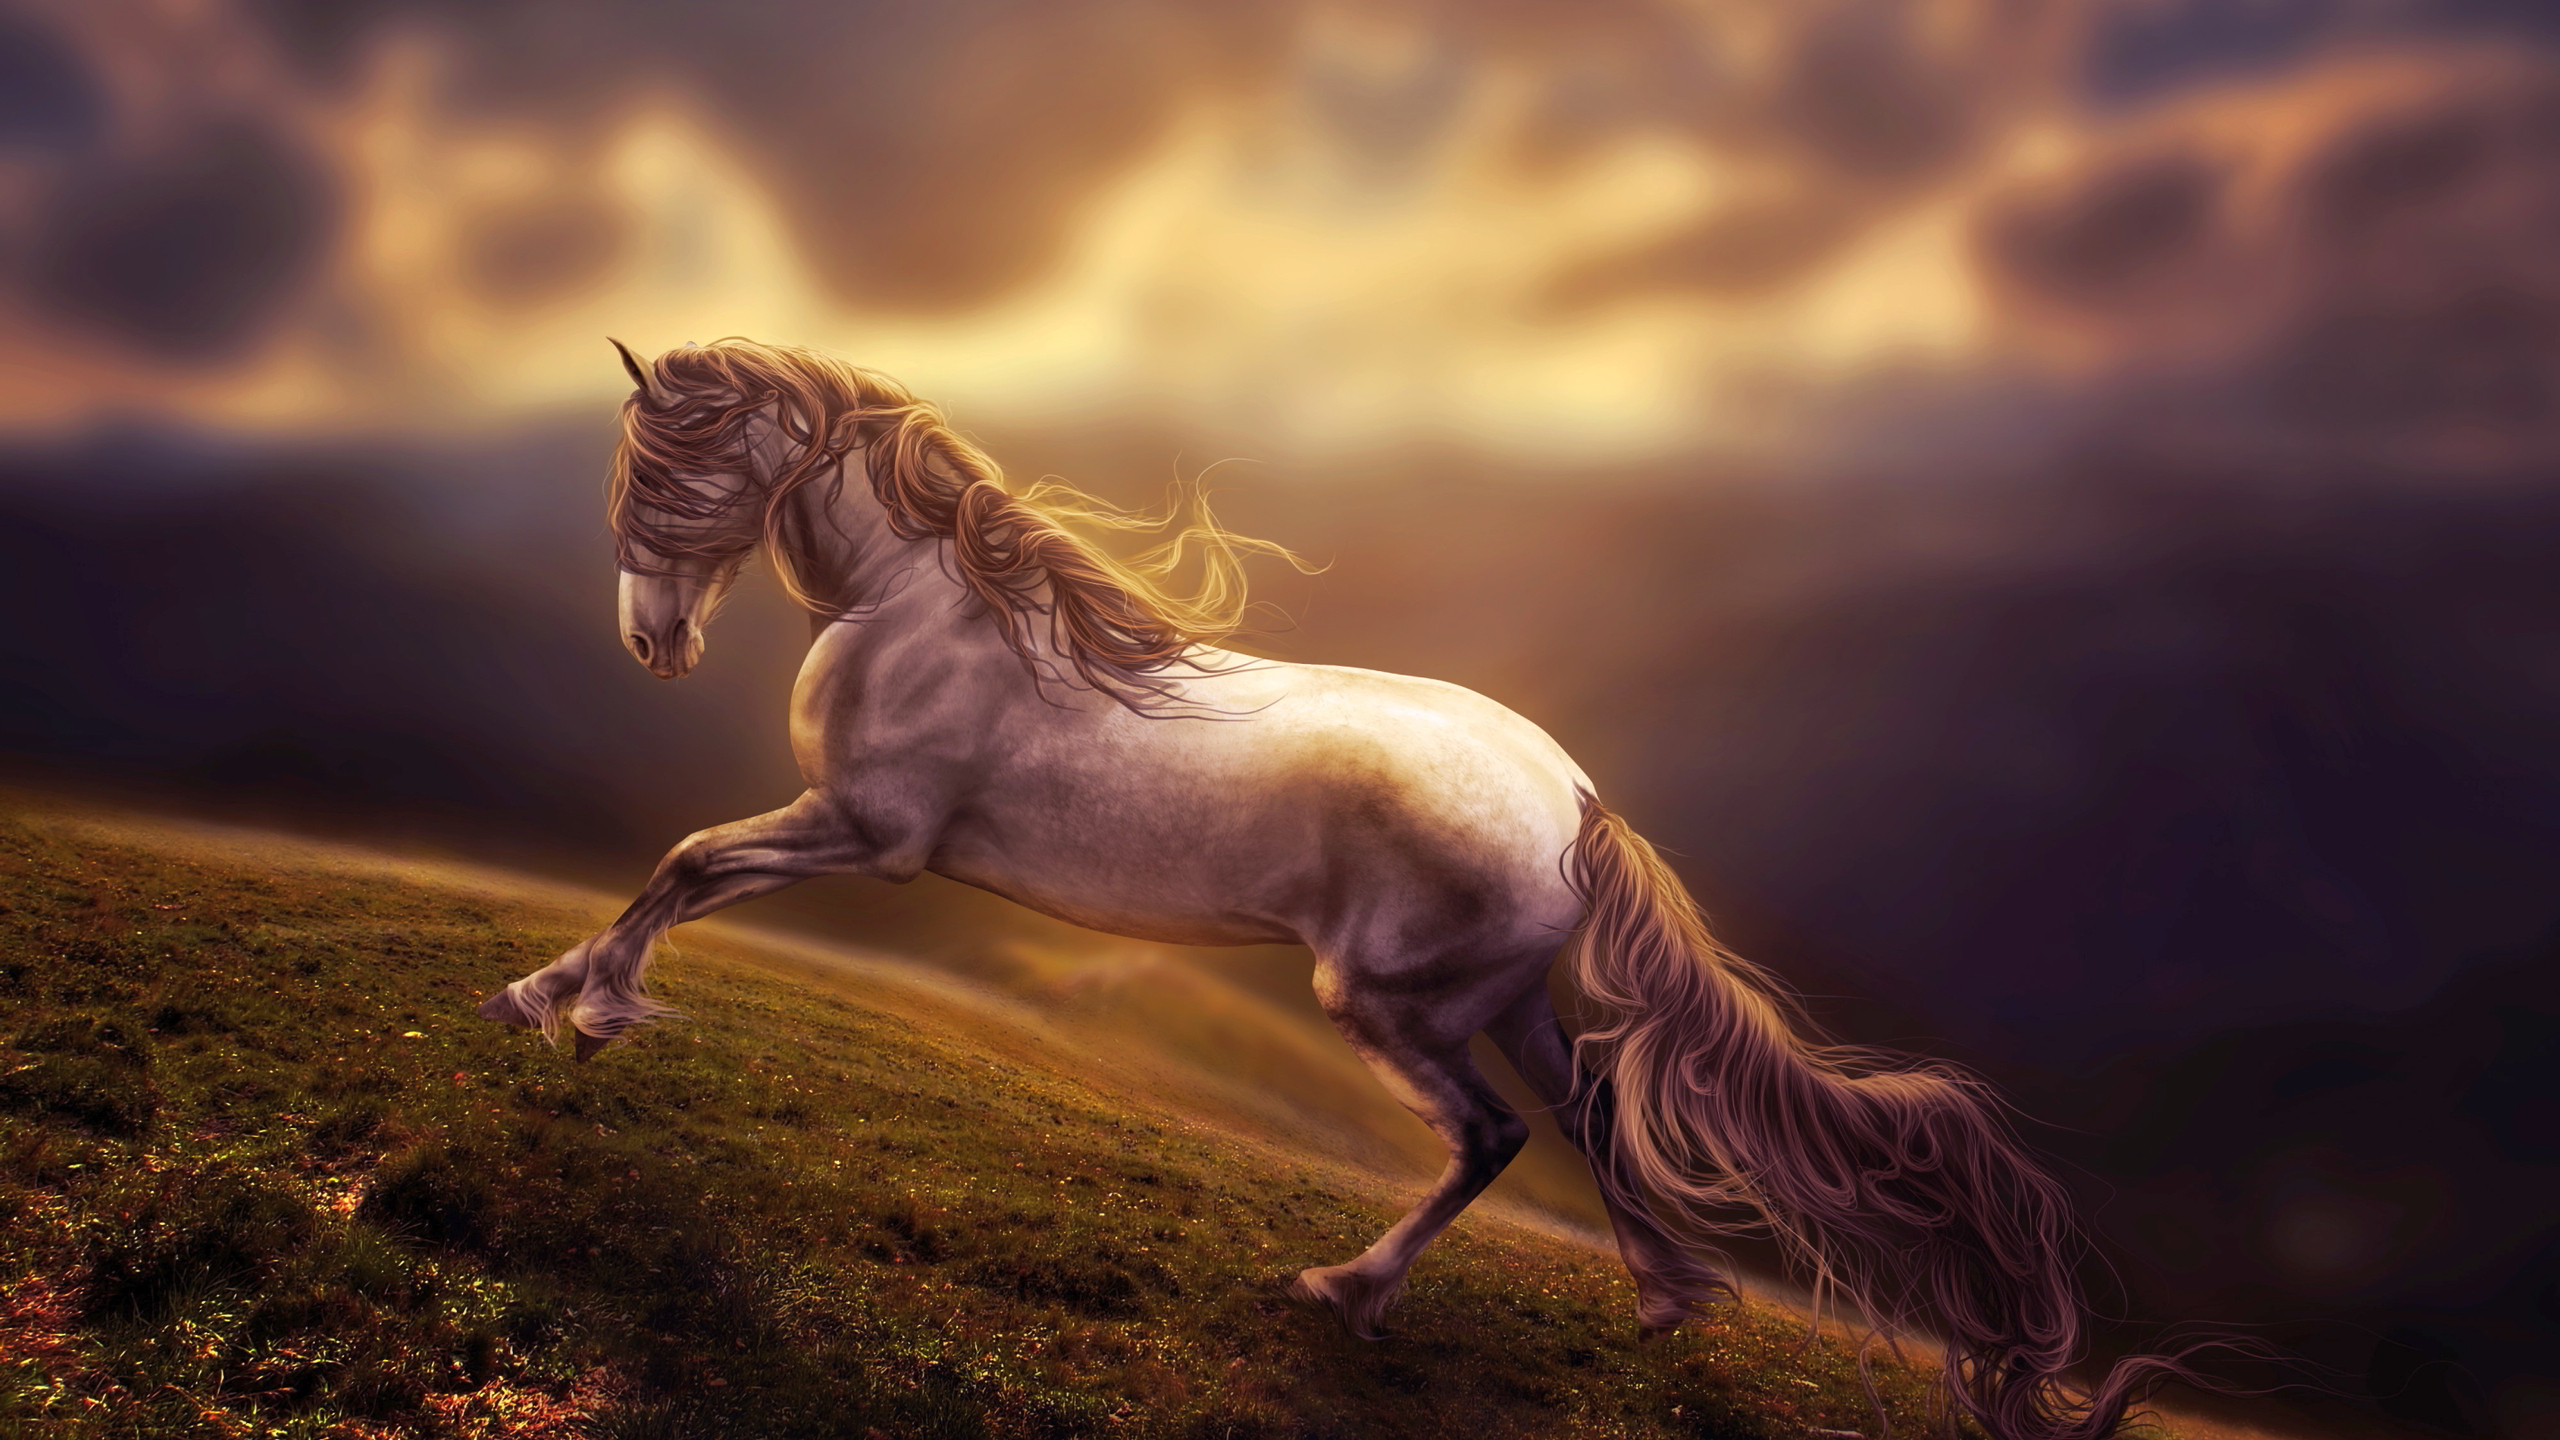 2560x1440 Amazing Horse Art 1440p Resolution Hd 4k Wallpapers Images Backgrounds Photos And Pictures